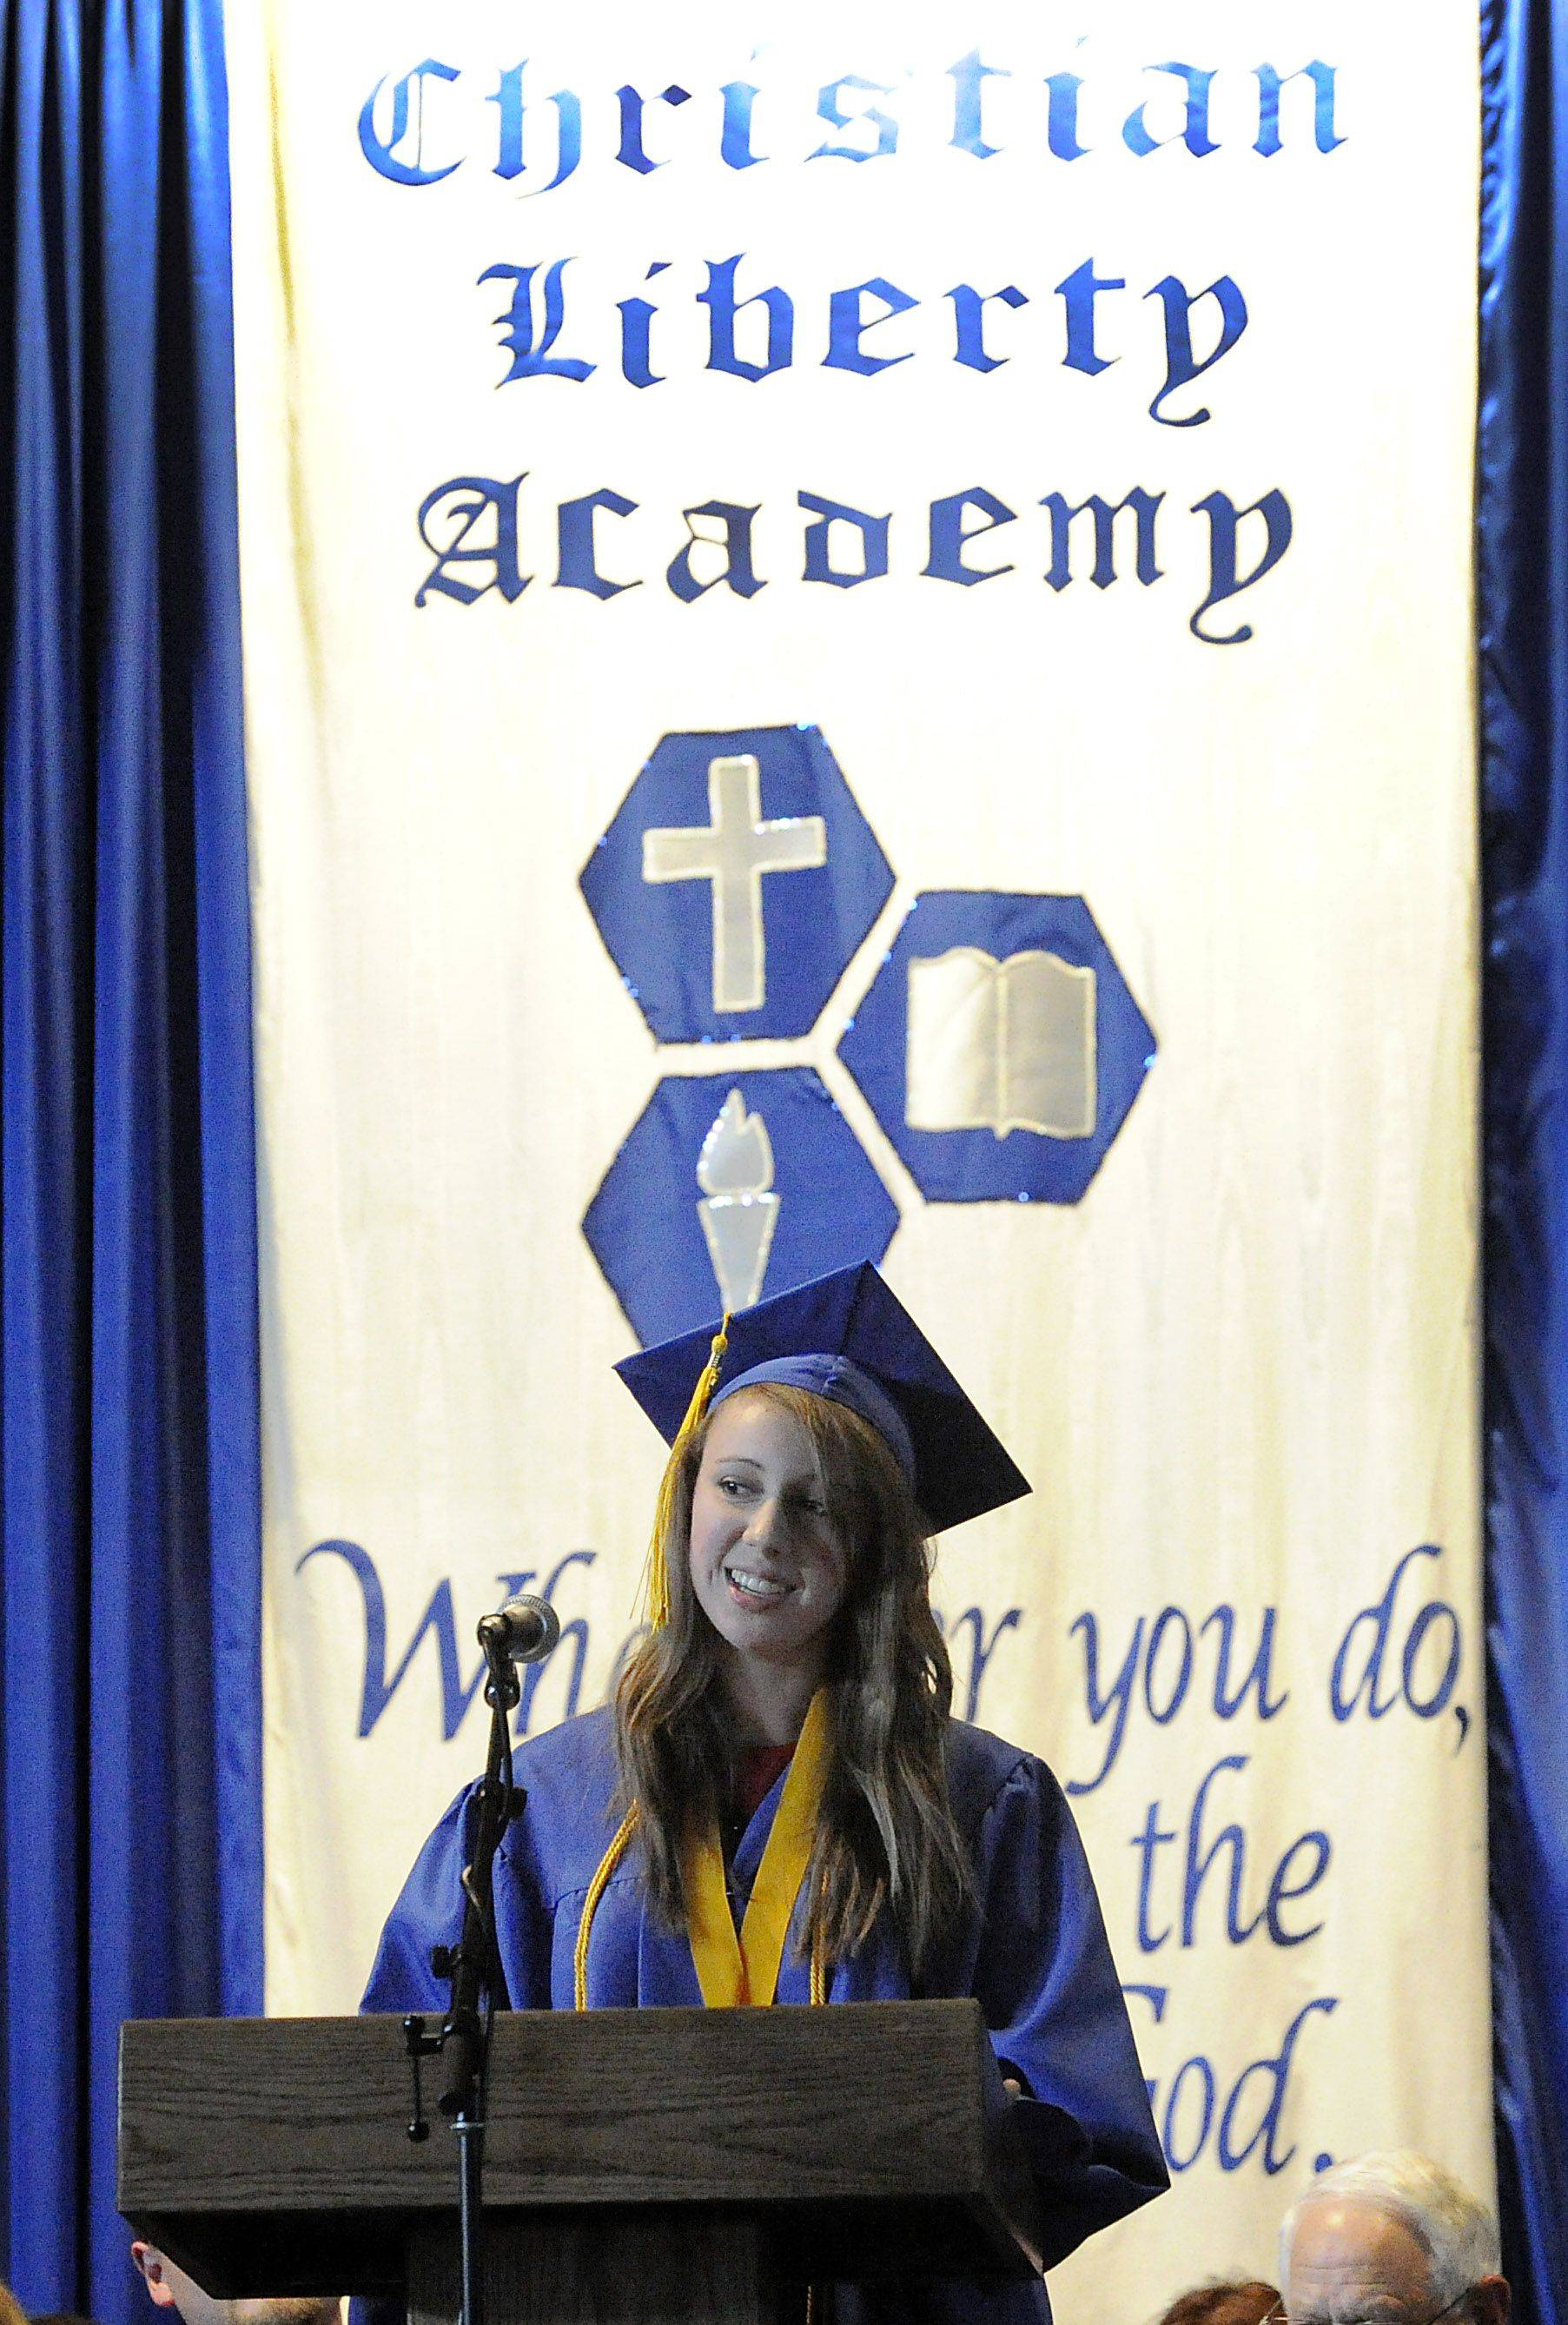 Lilli Stushek gives the salutatory address to 38 of her fellow classmates at the Christian Liberty graduation in Arlington Heights on Sunday.